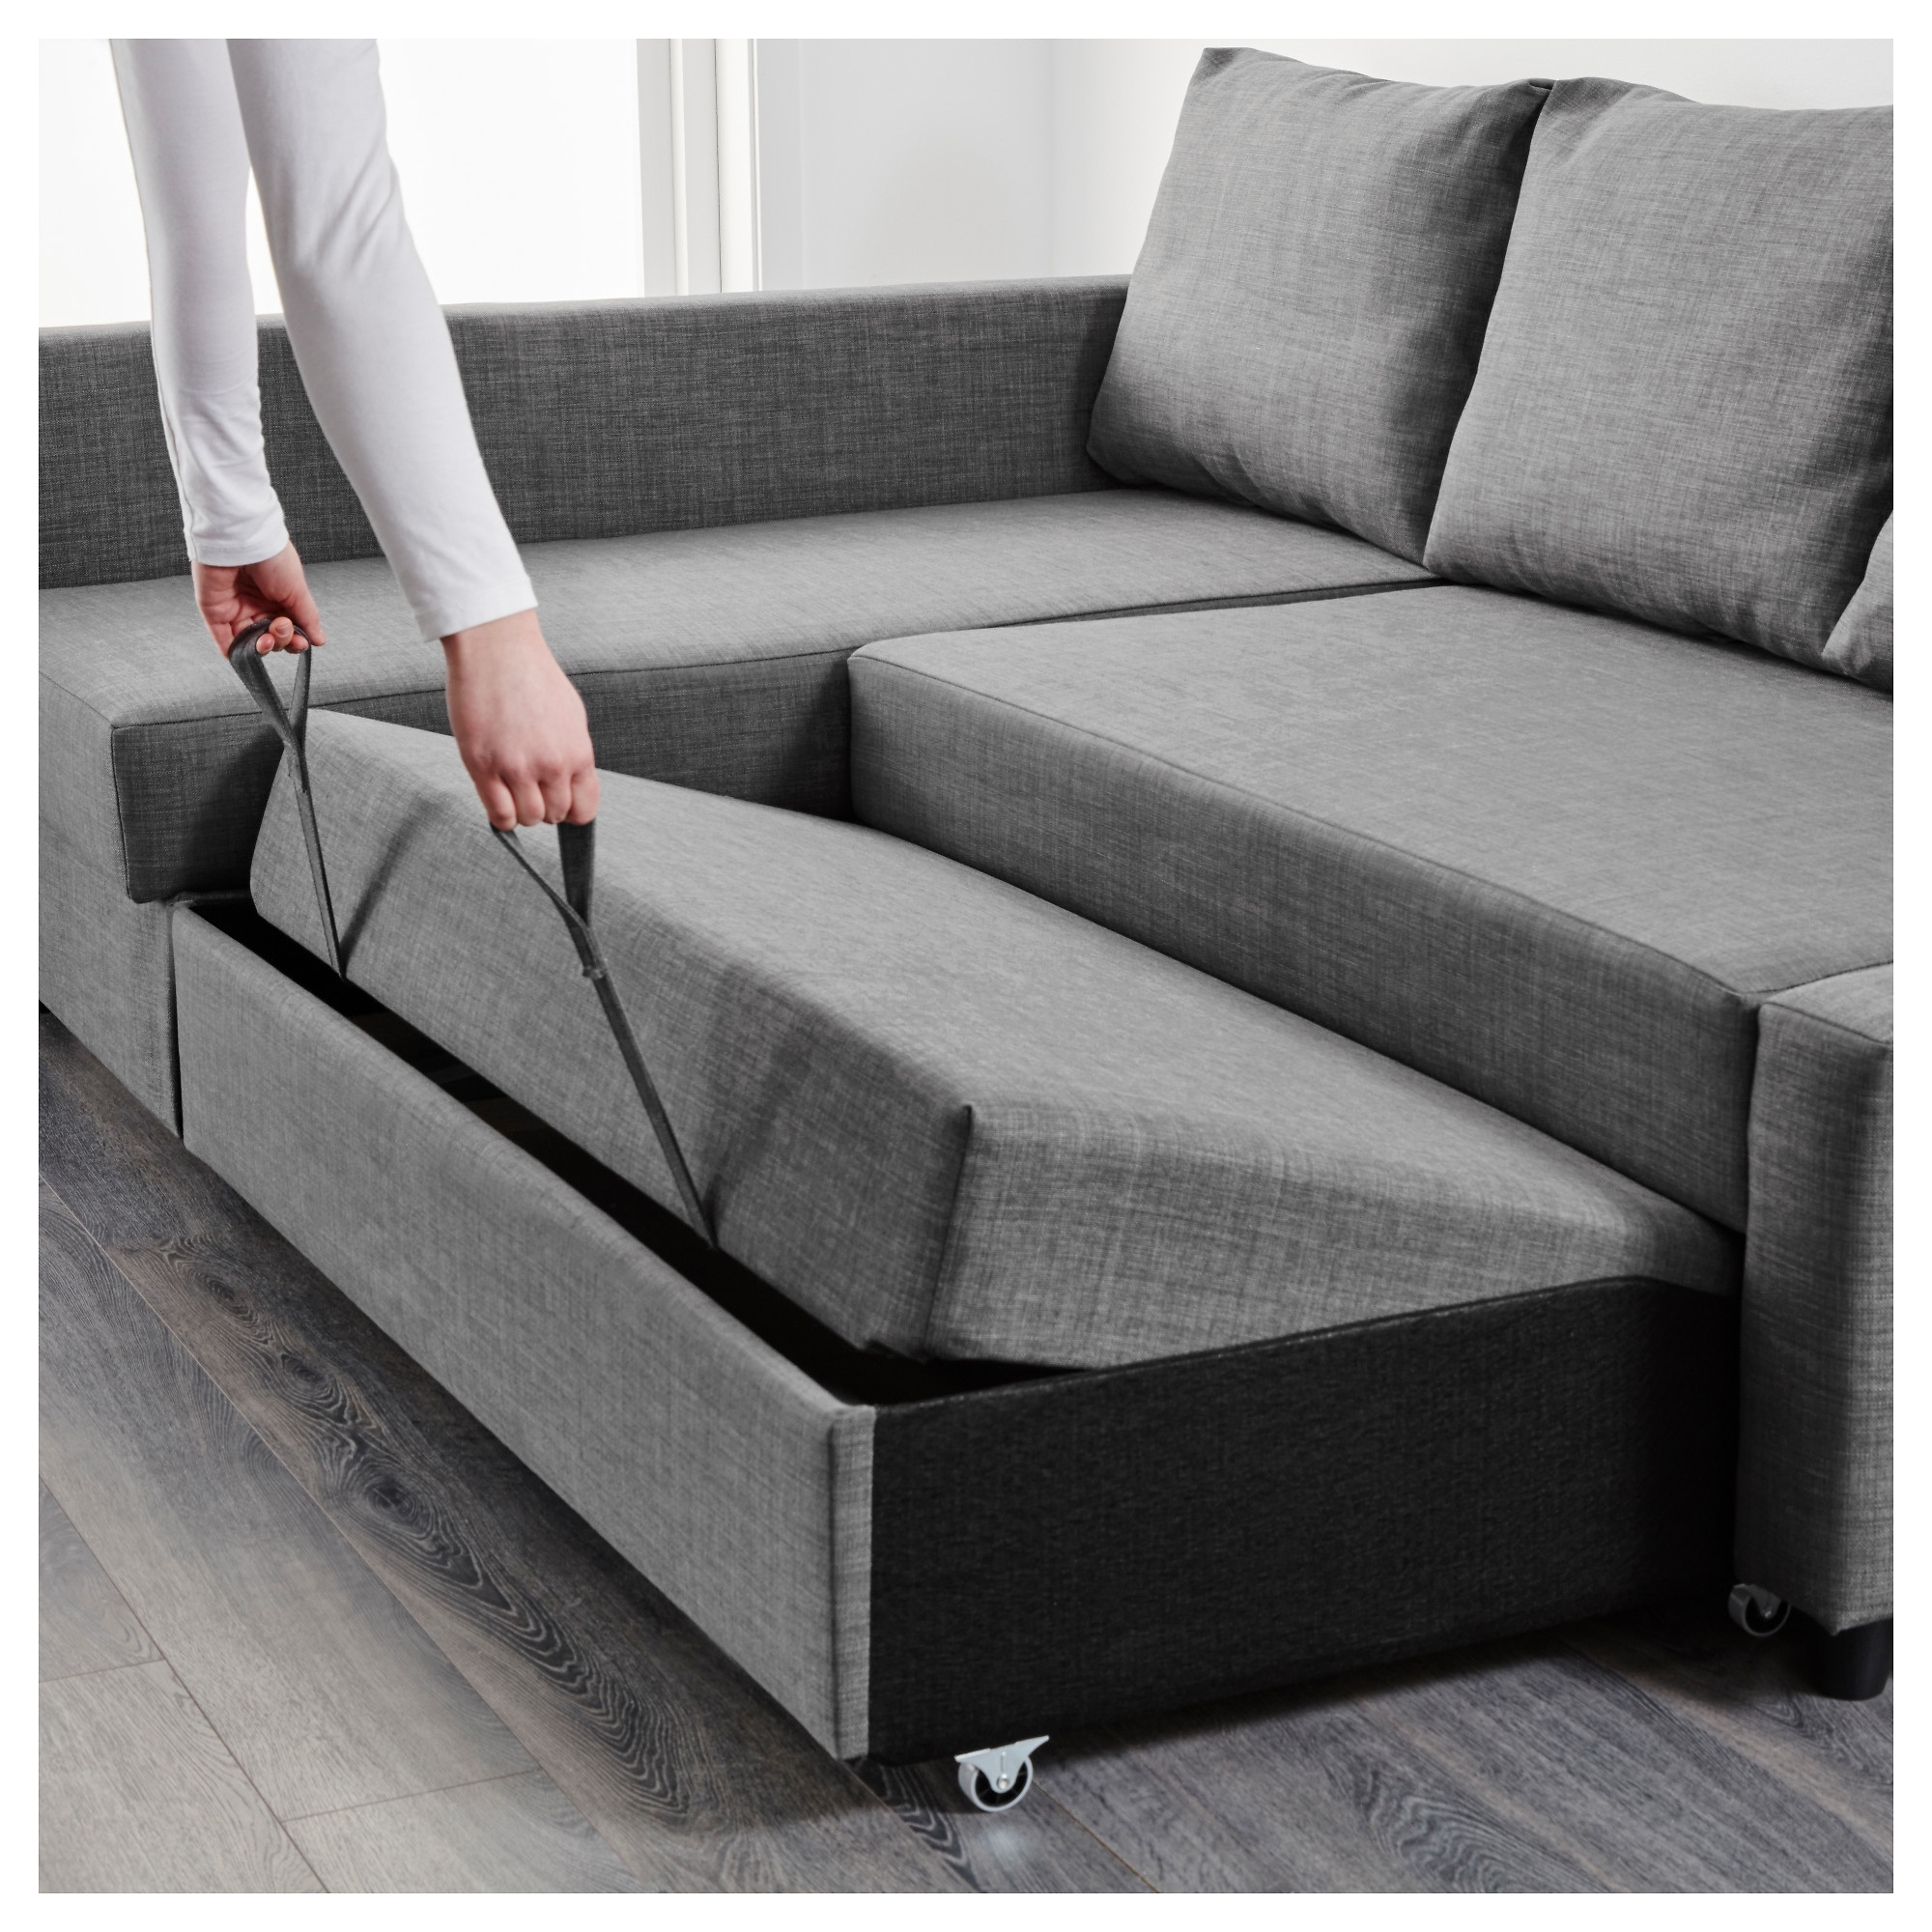 Popular Photo of Ikea Corner Sofas With Storage